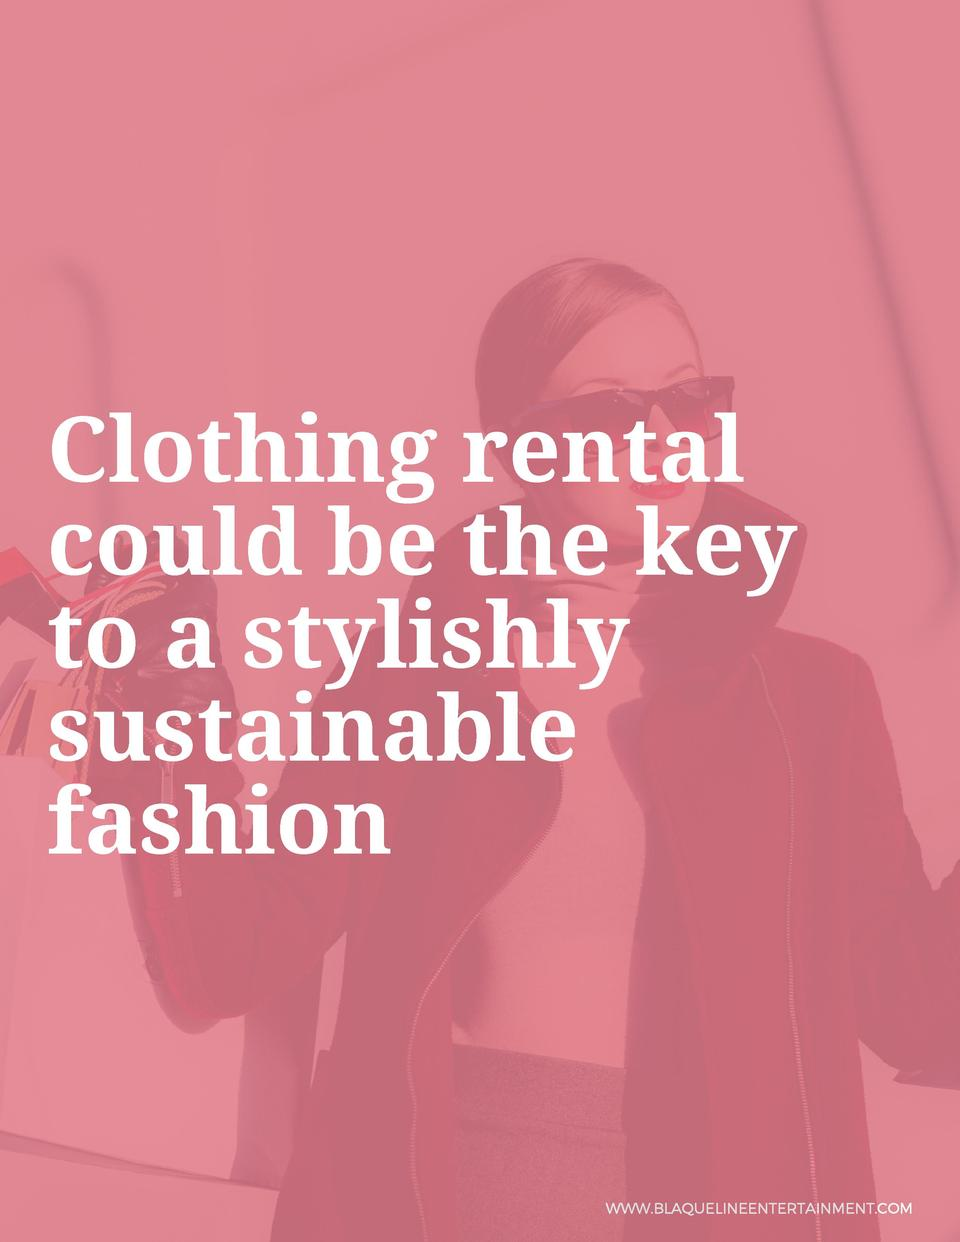 Clothing rental could be the key to a stylishly sustainable fashion  WWW.BLAQUELINEENTERTAINMENT.COM